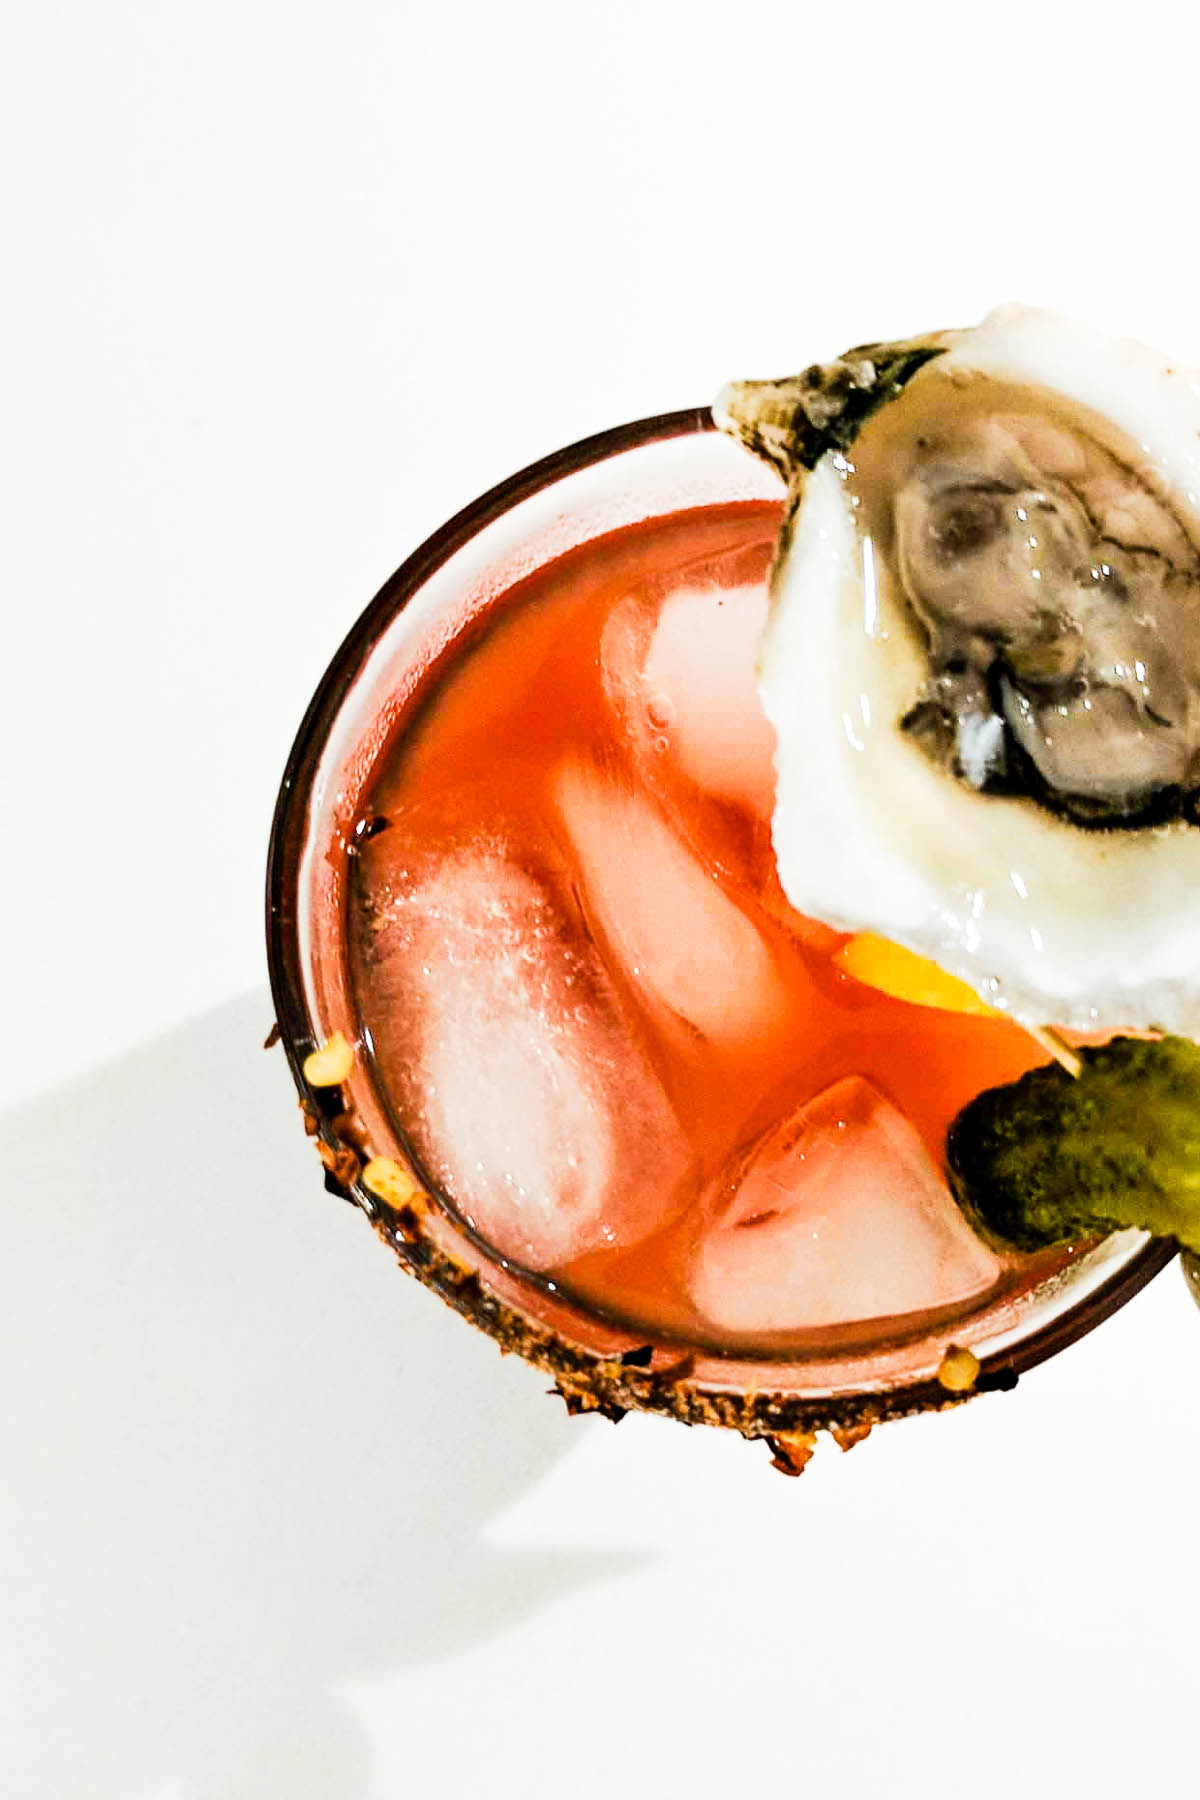 Whether it's Friday/Saturday night or Sunday morning brunch, this Classy Oyster Gin Caesar is just what the doc ordered.- thebeaderchef.com